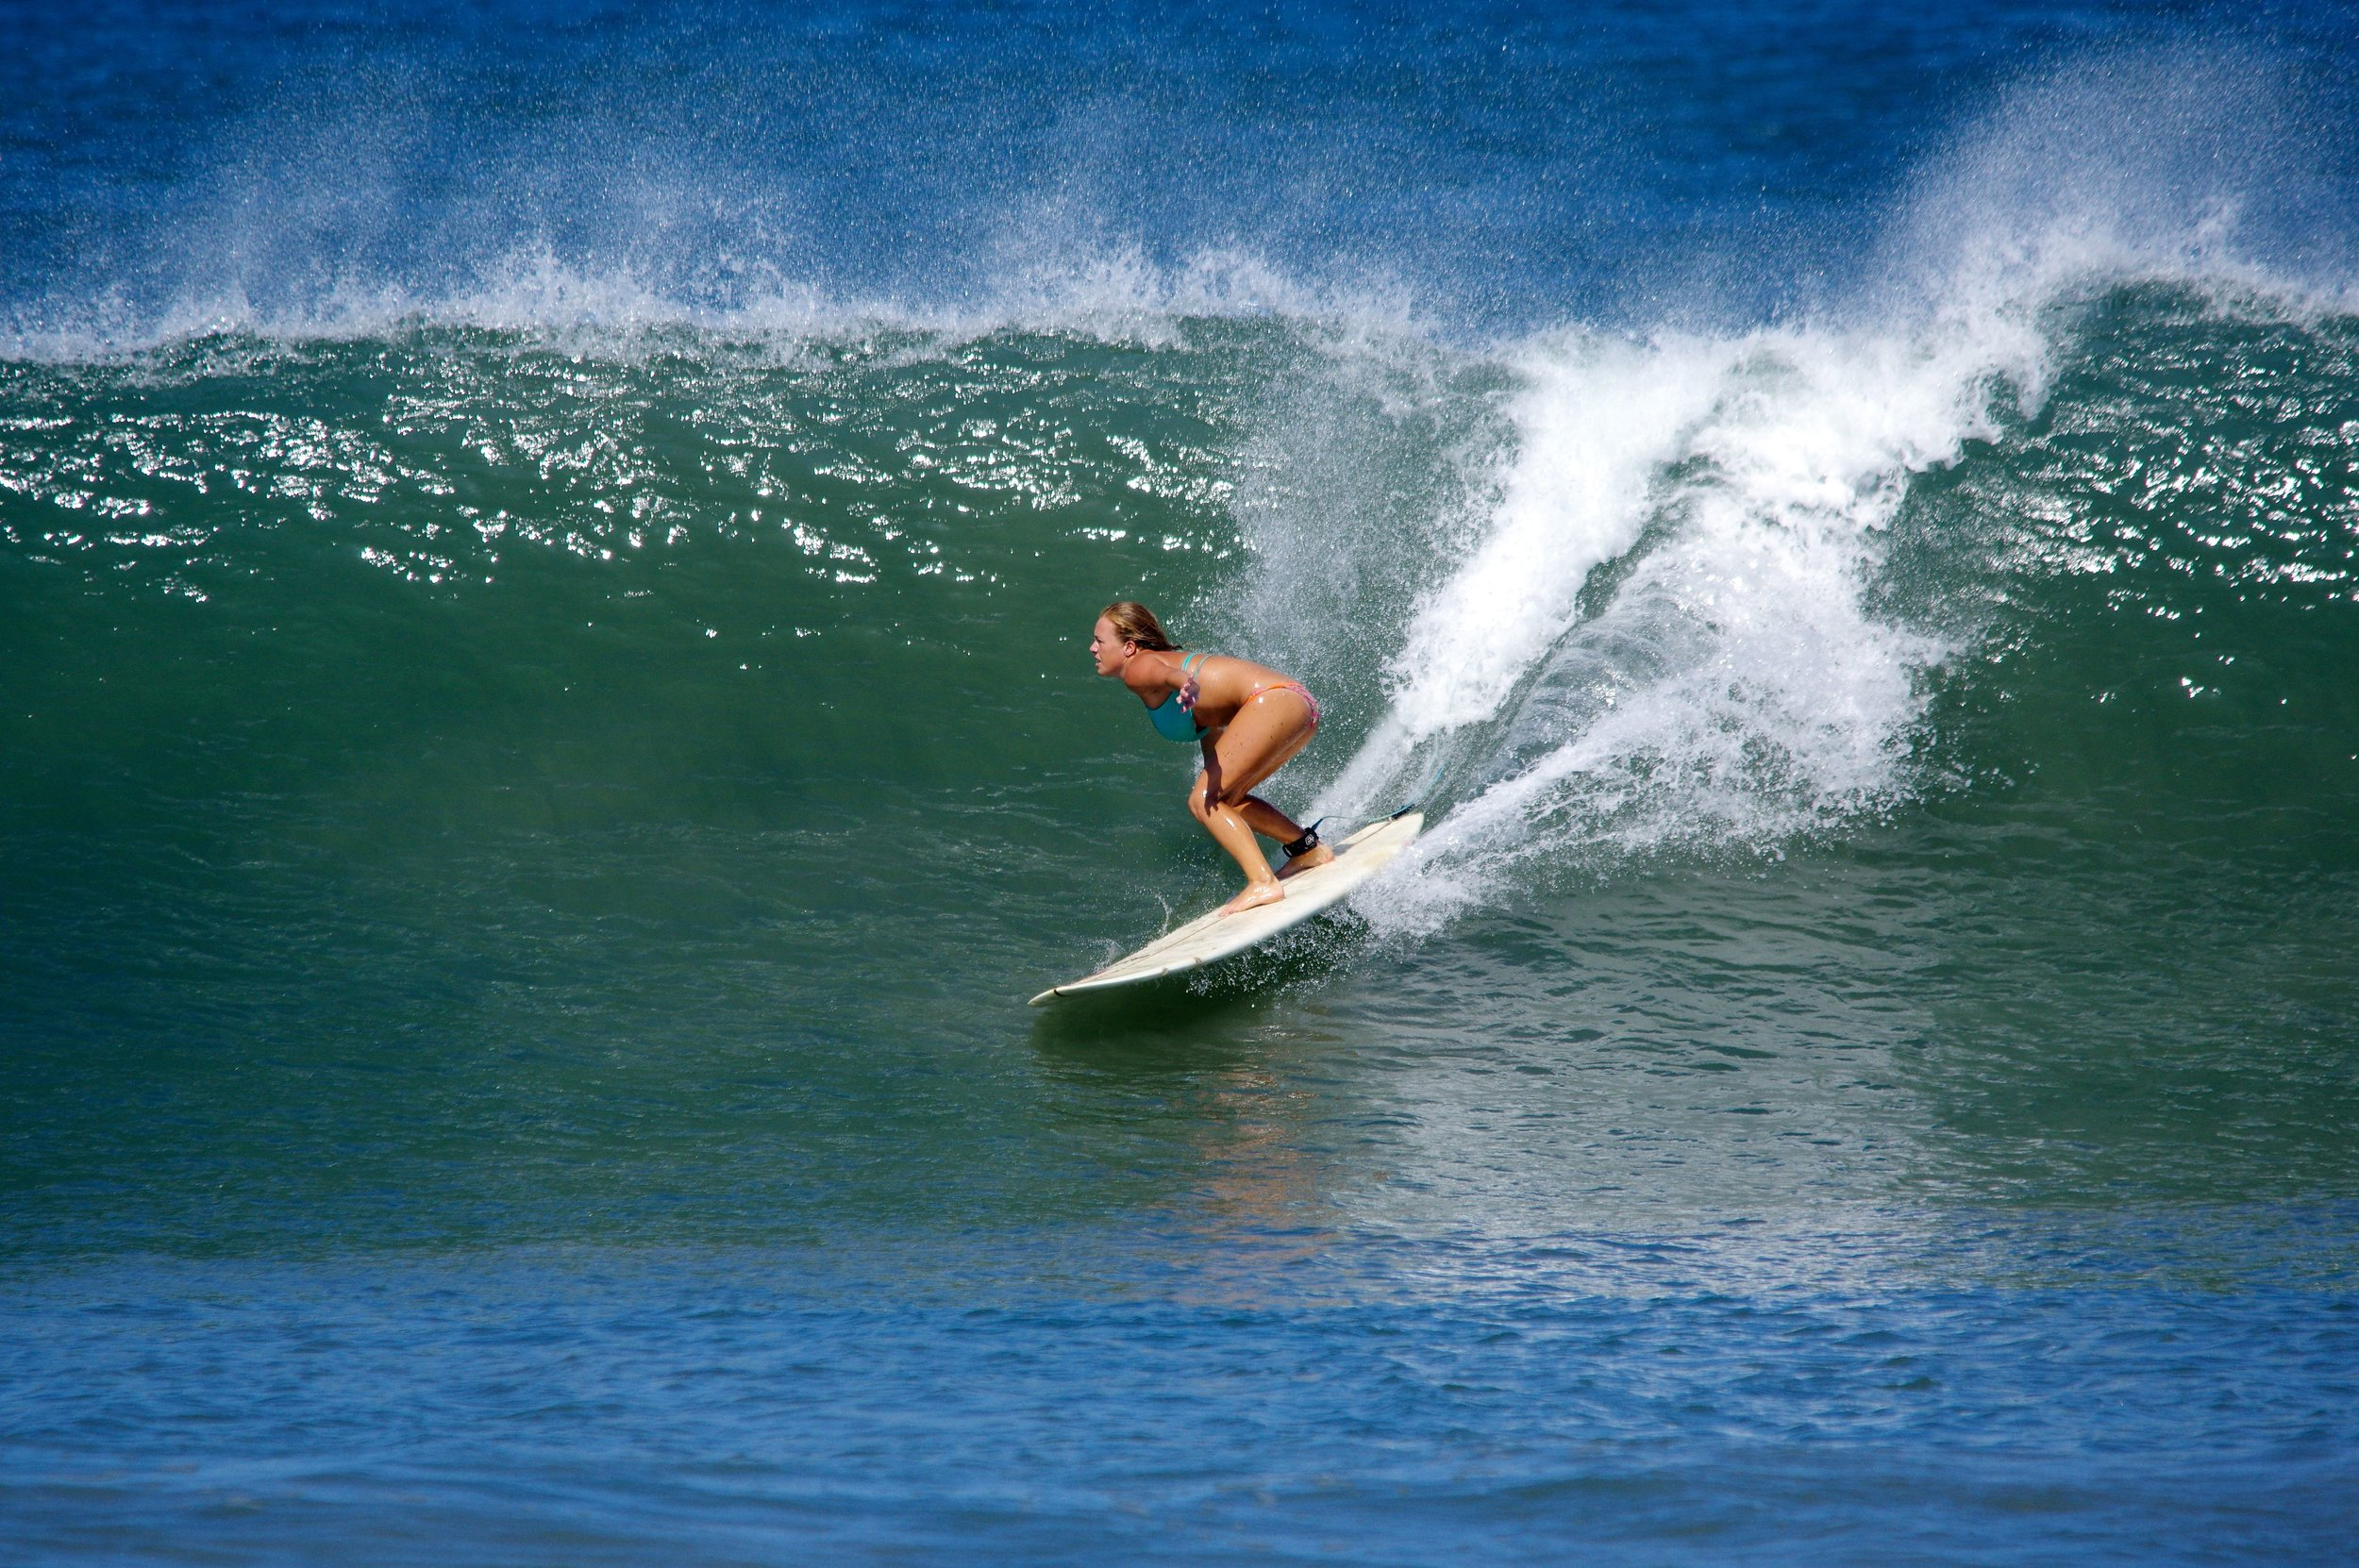 jax surfing costa rica main break mike.jpg